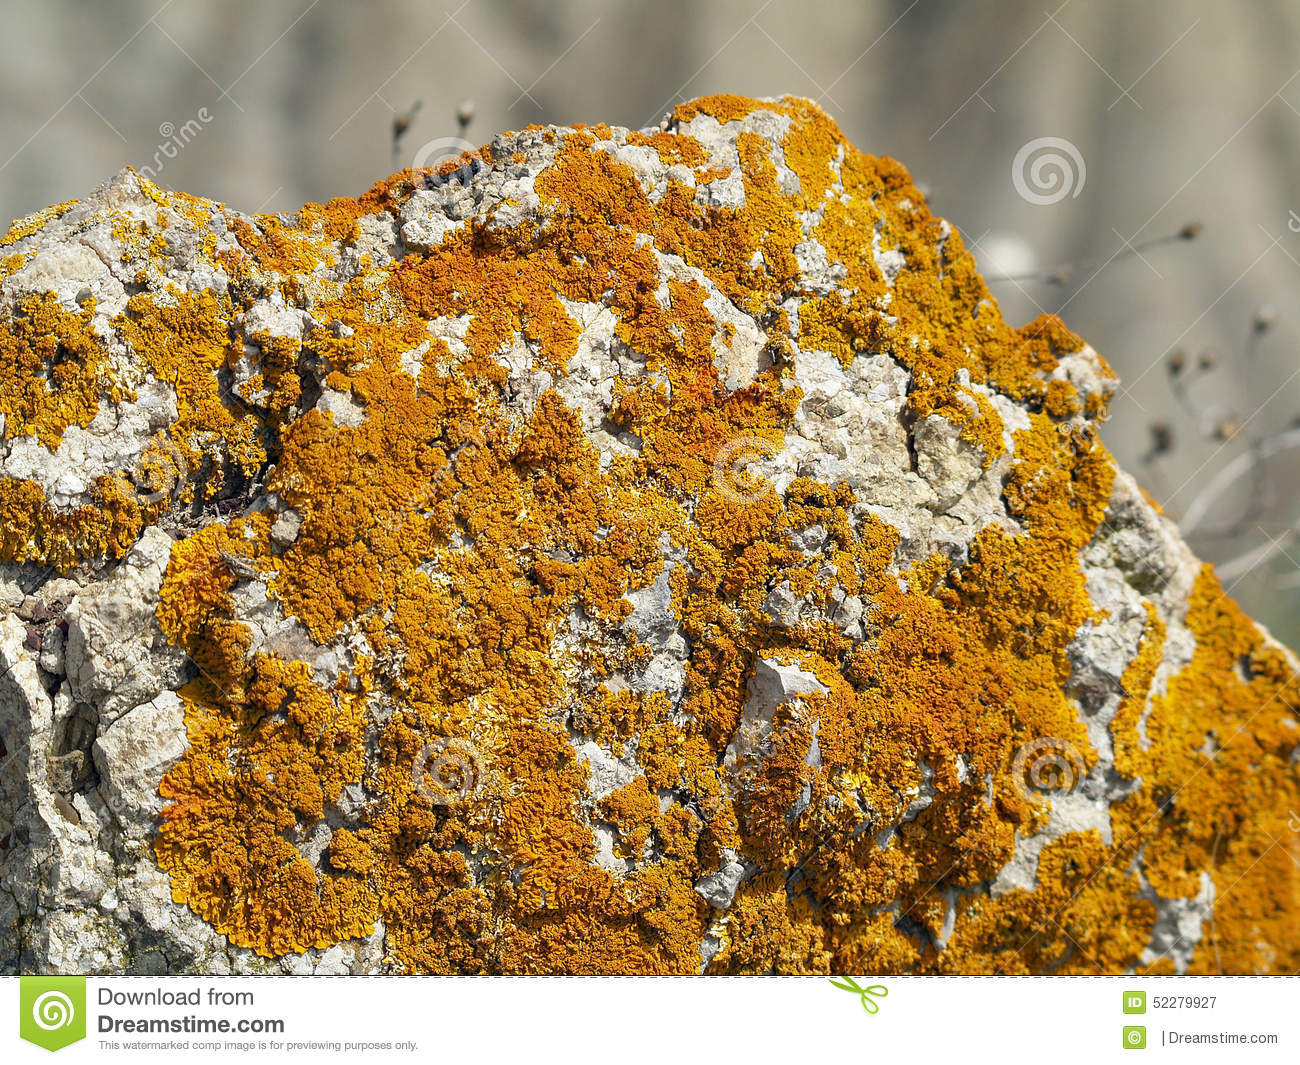 Thallophyta Stock Photos, Images, & Pictures.